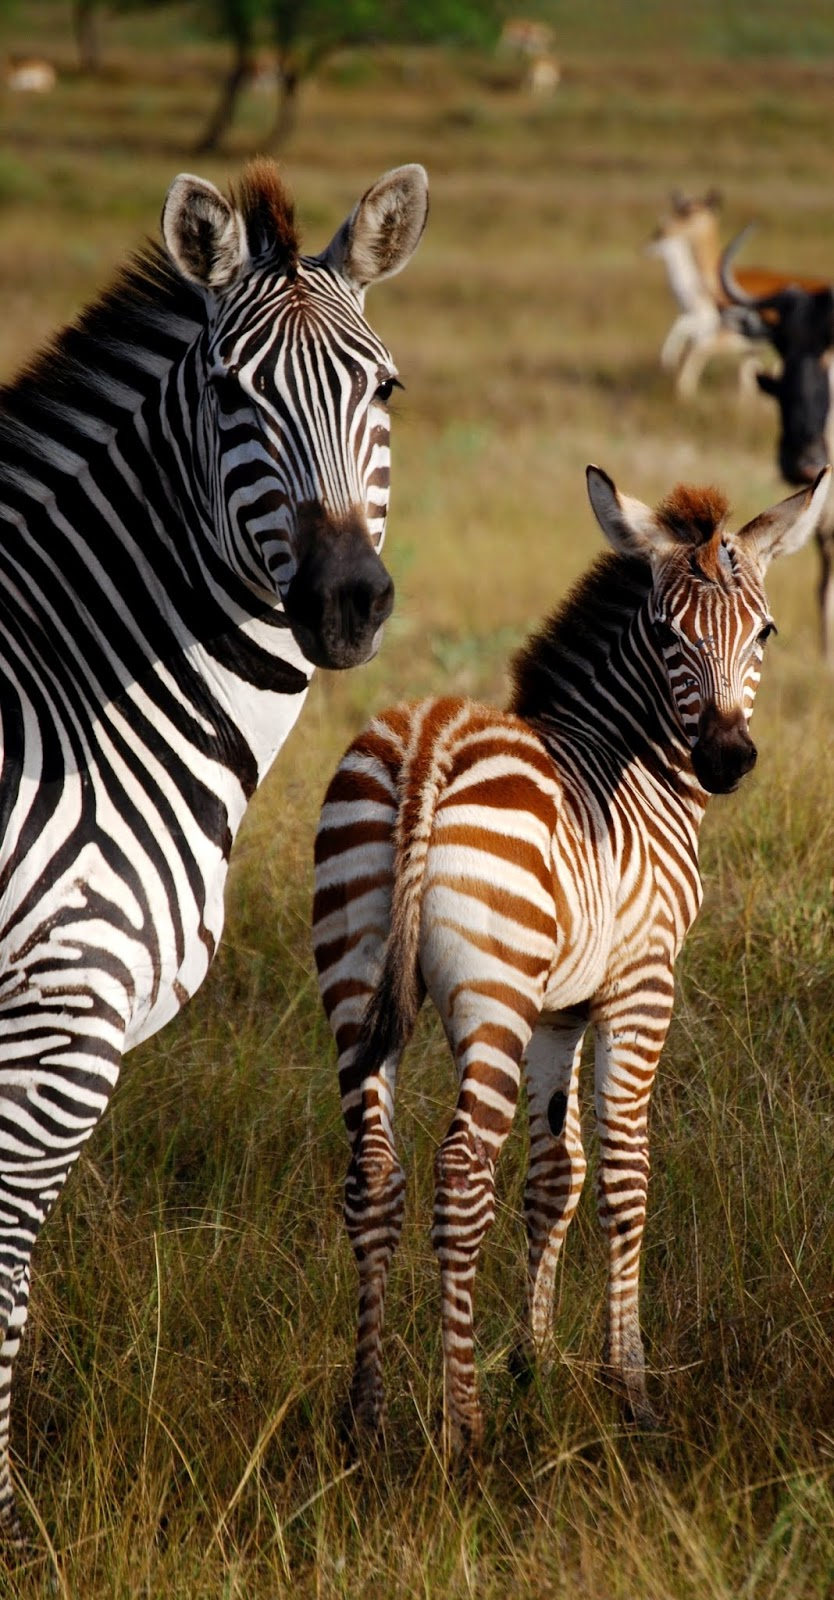 Zebra mother and child.